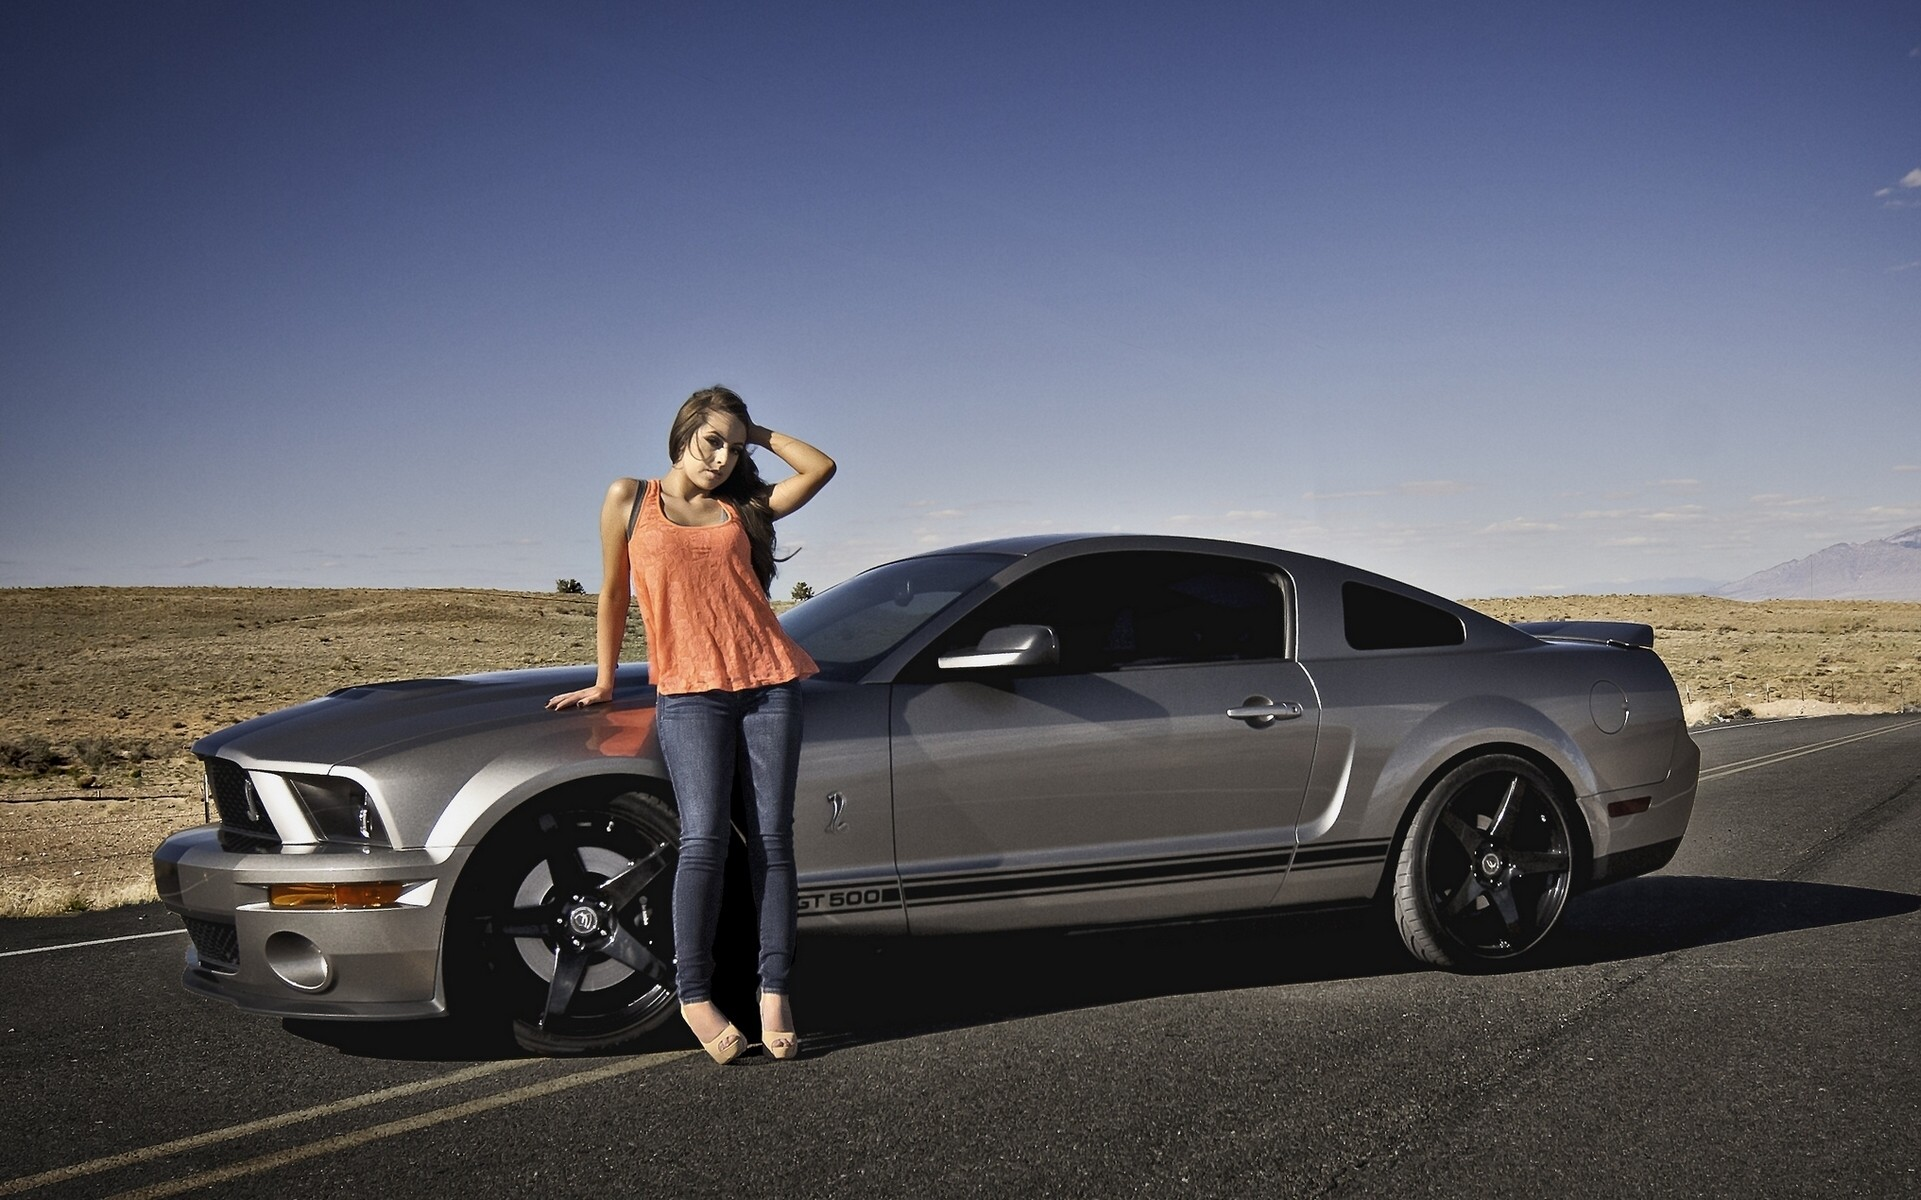 Wallpapers Ford Mustang Shelby GT500 Grey Girls Cars Side auto  automobile